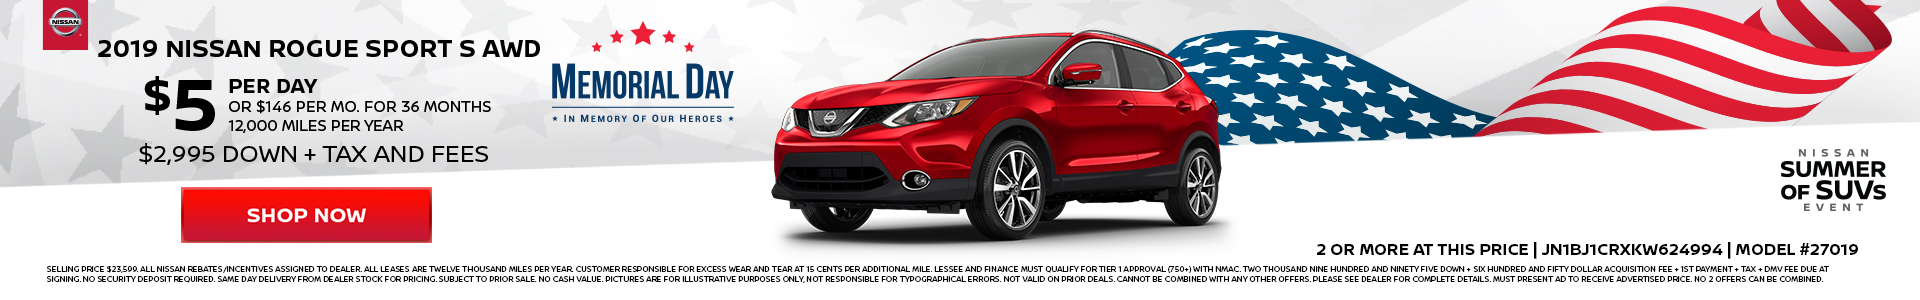 Nissan Rogue Sport $5 Lease